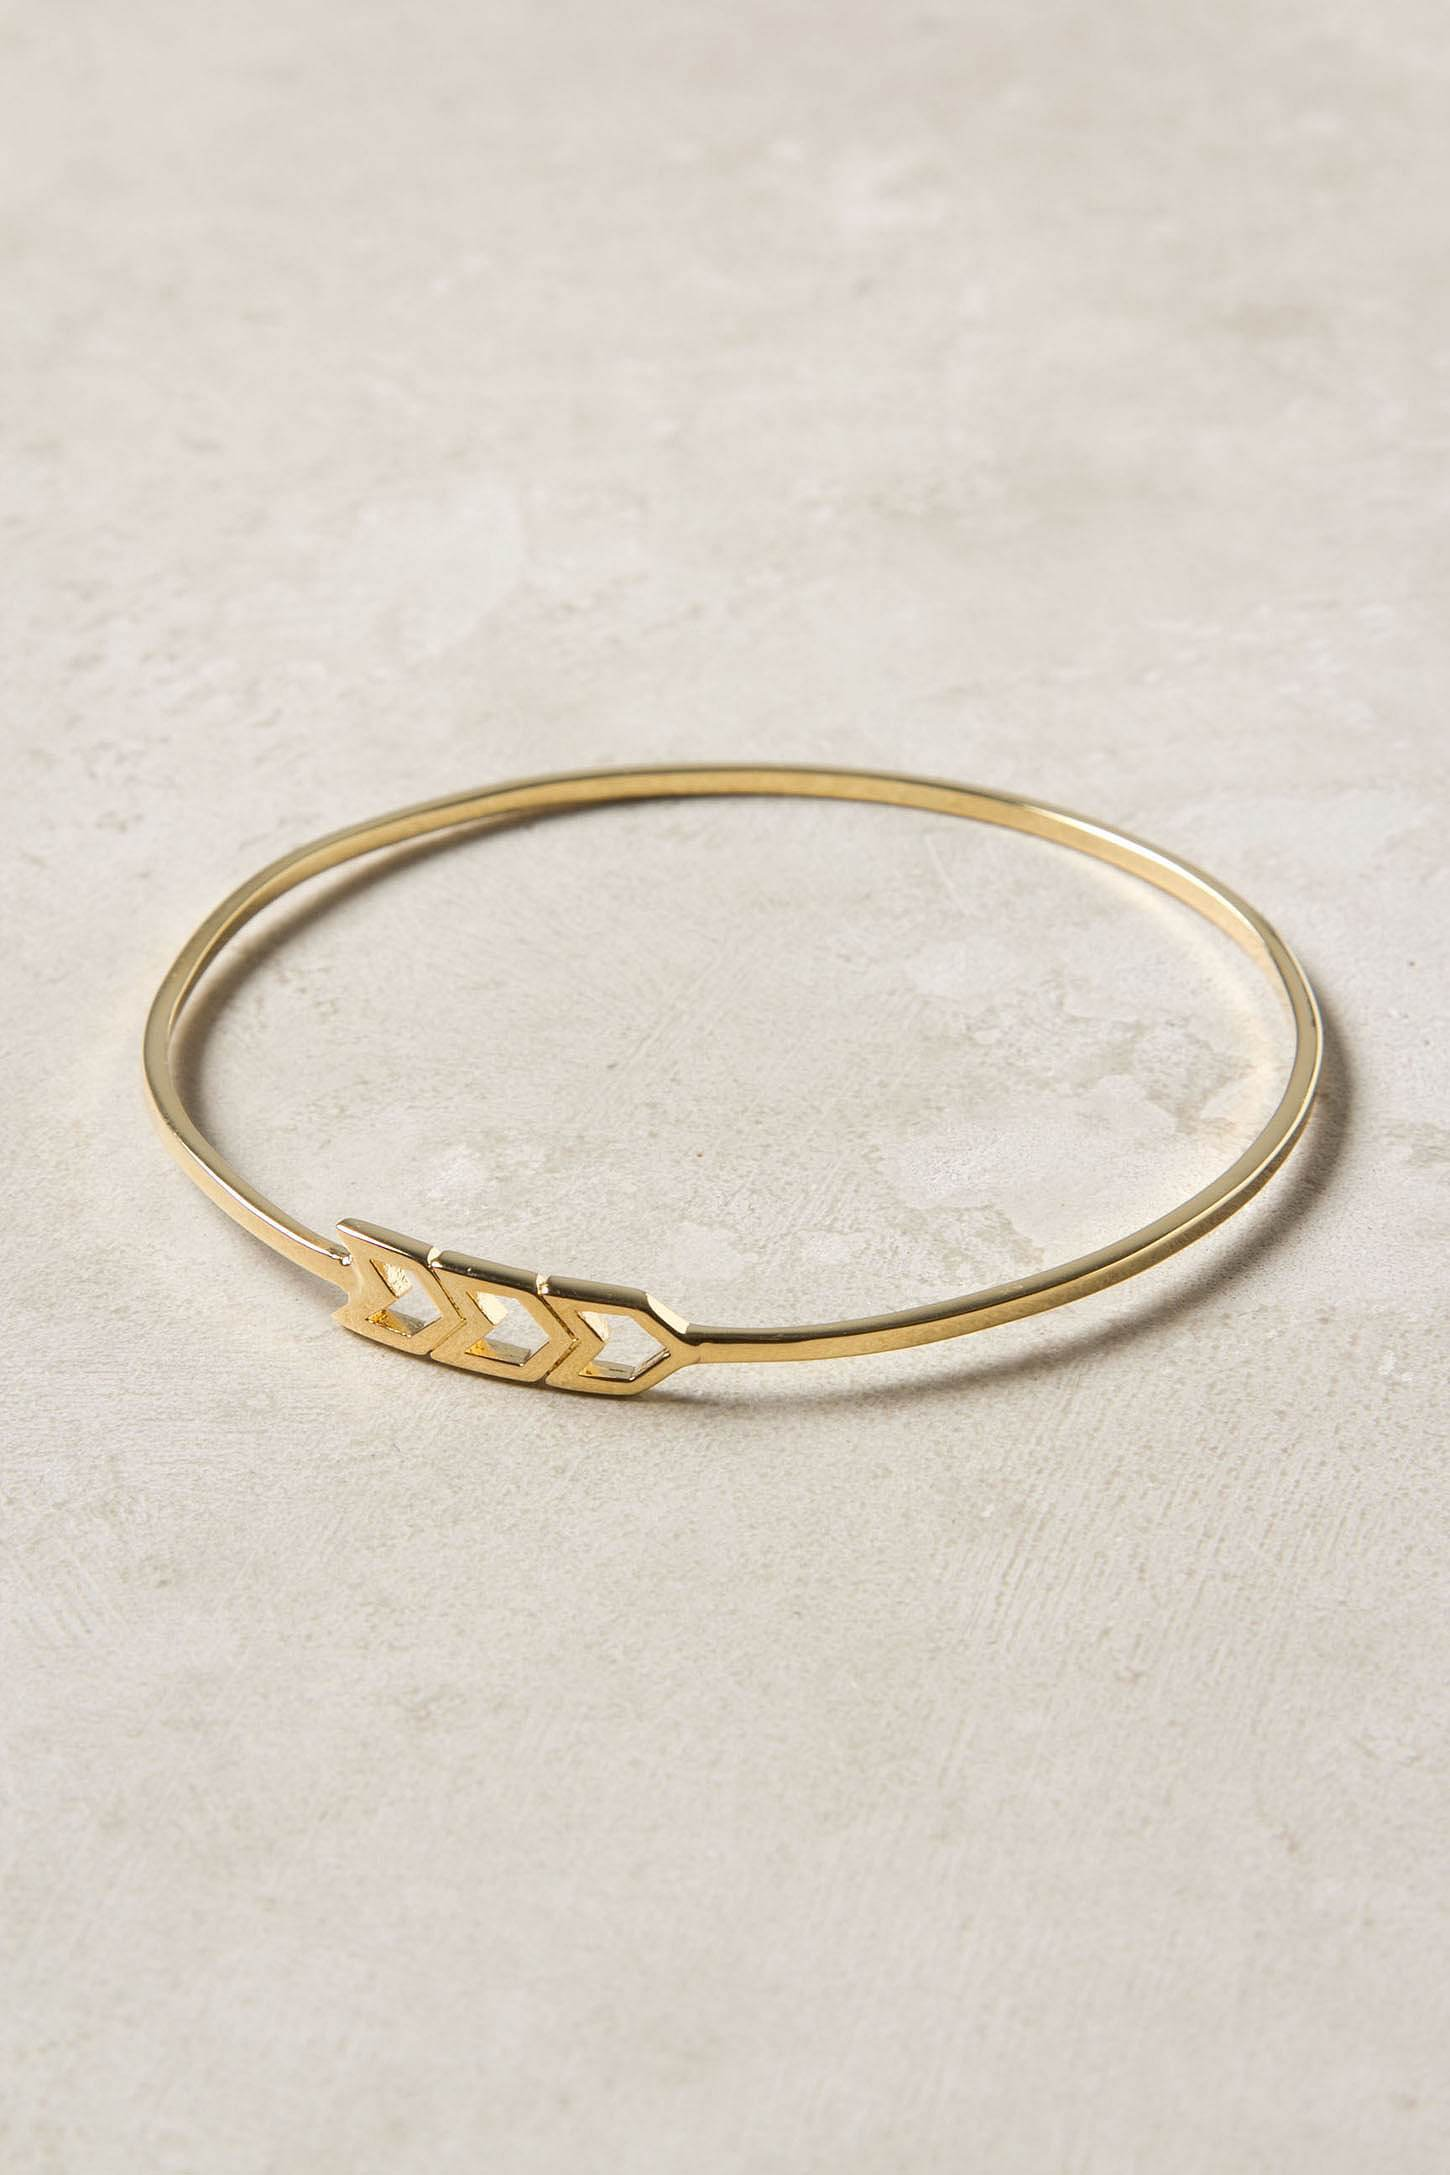 Wristwise Bangle